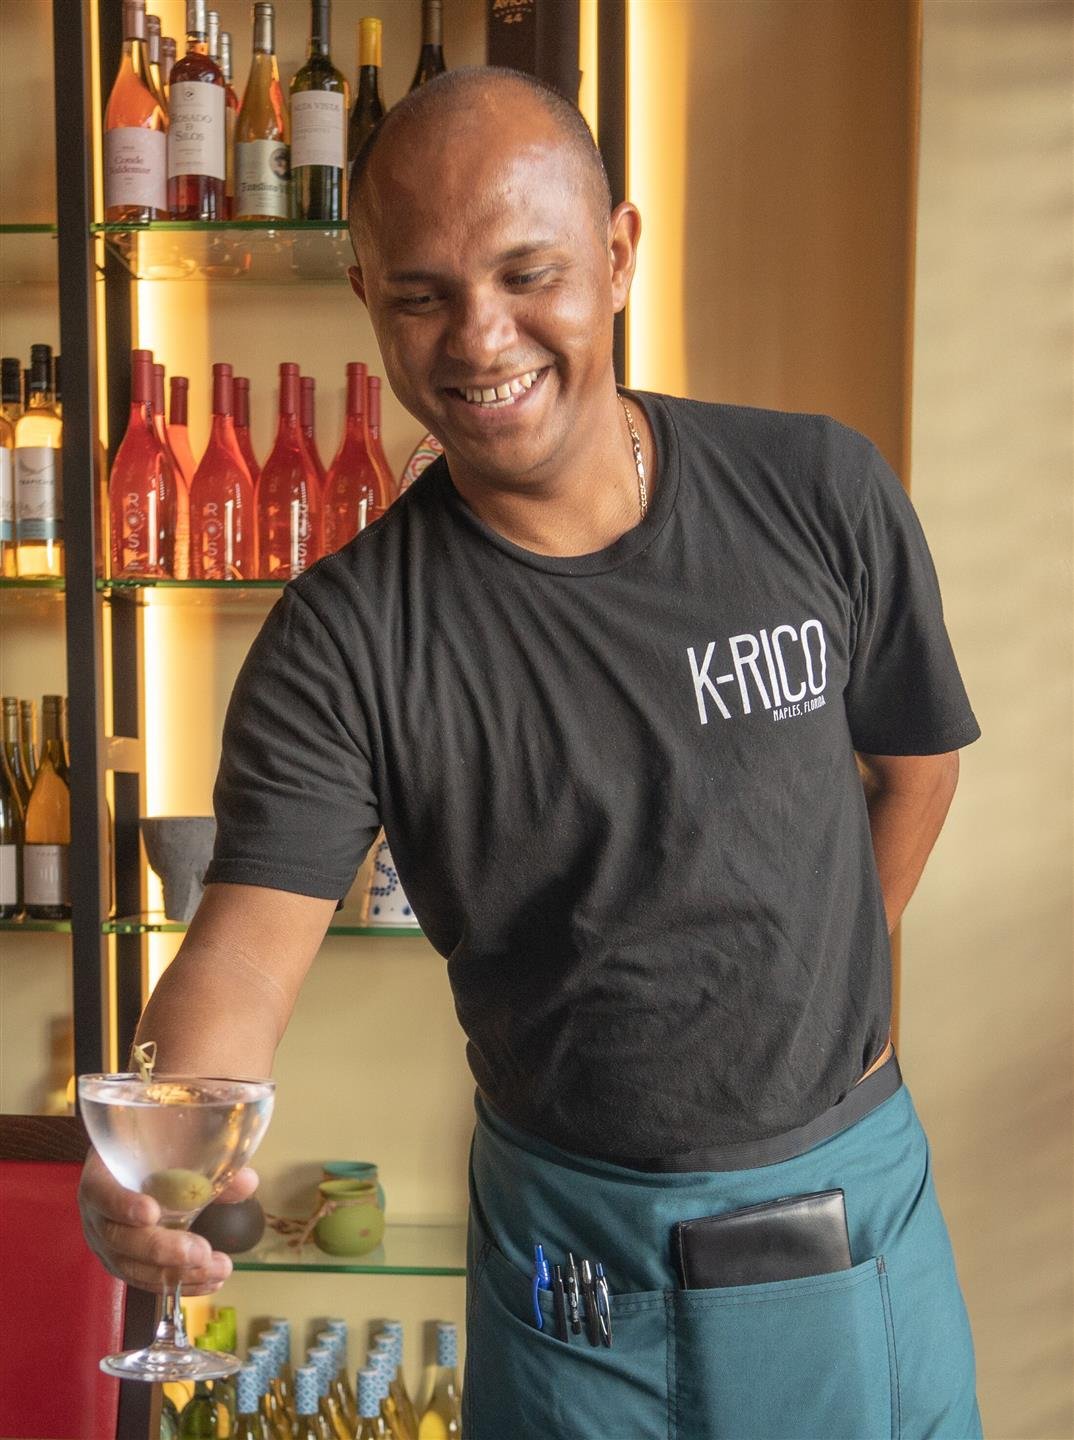 bartender smiling while handing over a drink